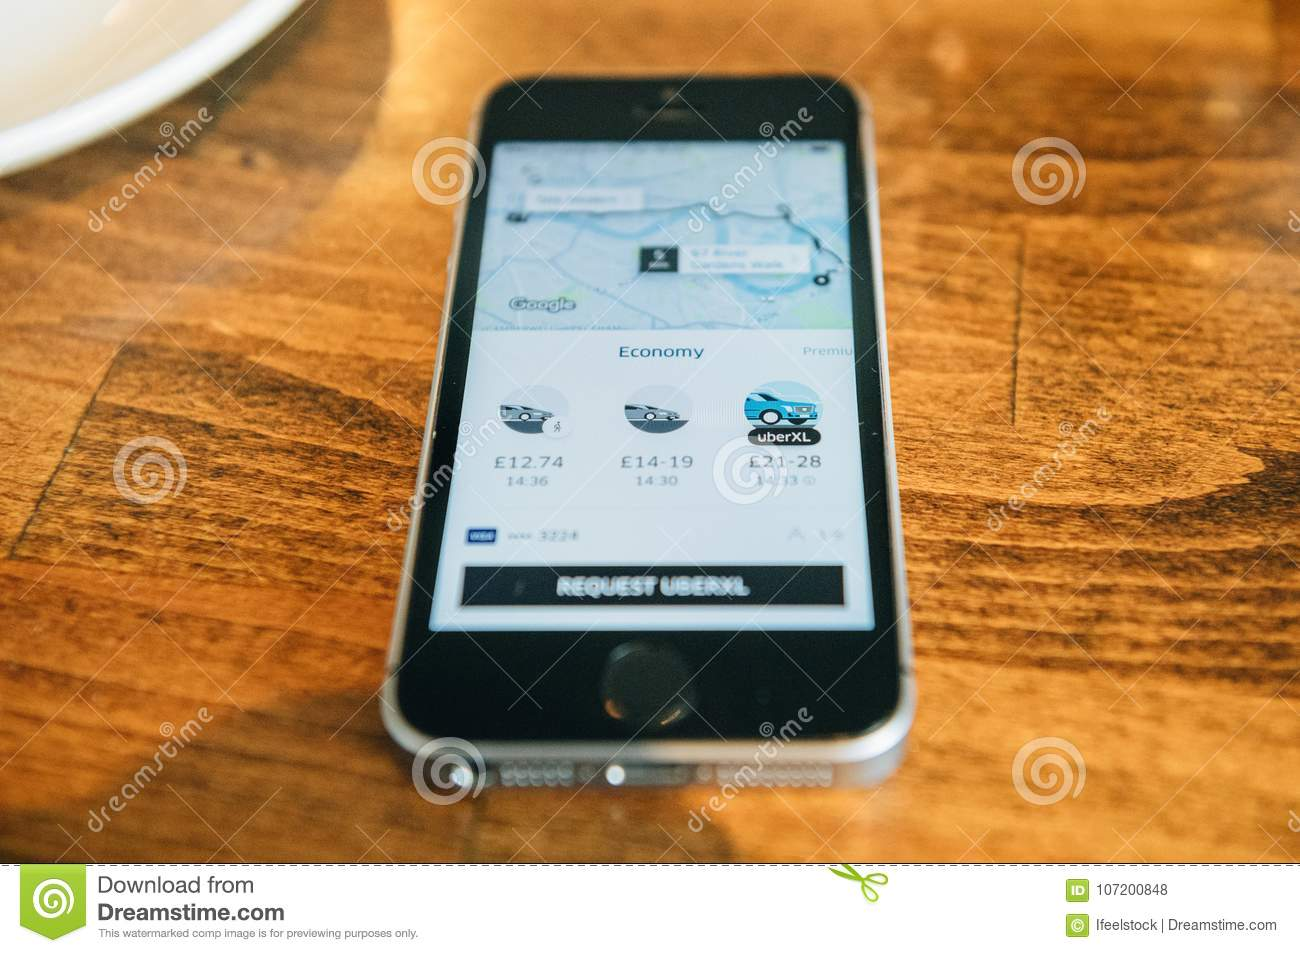 how to download uber application